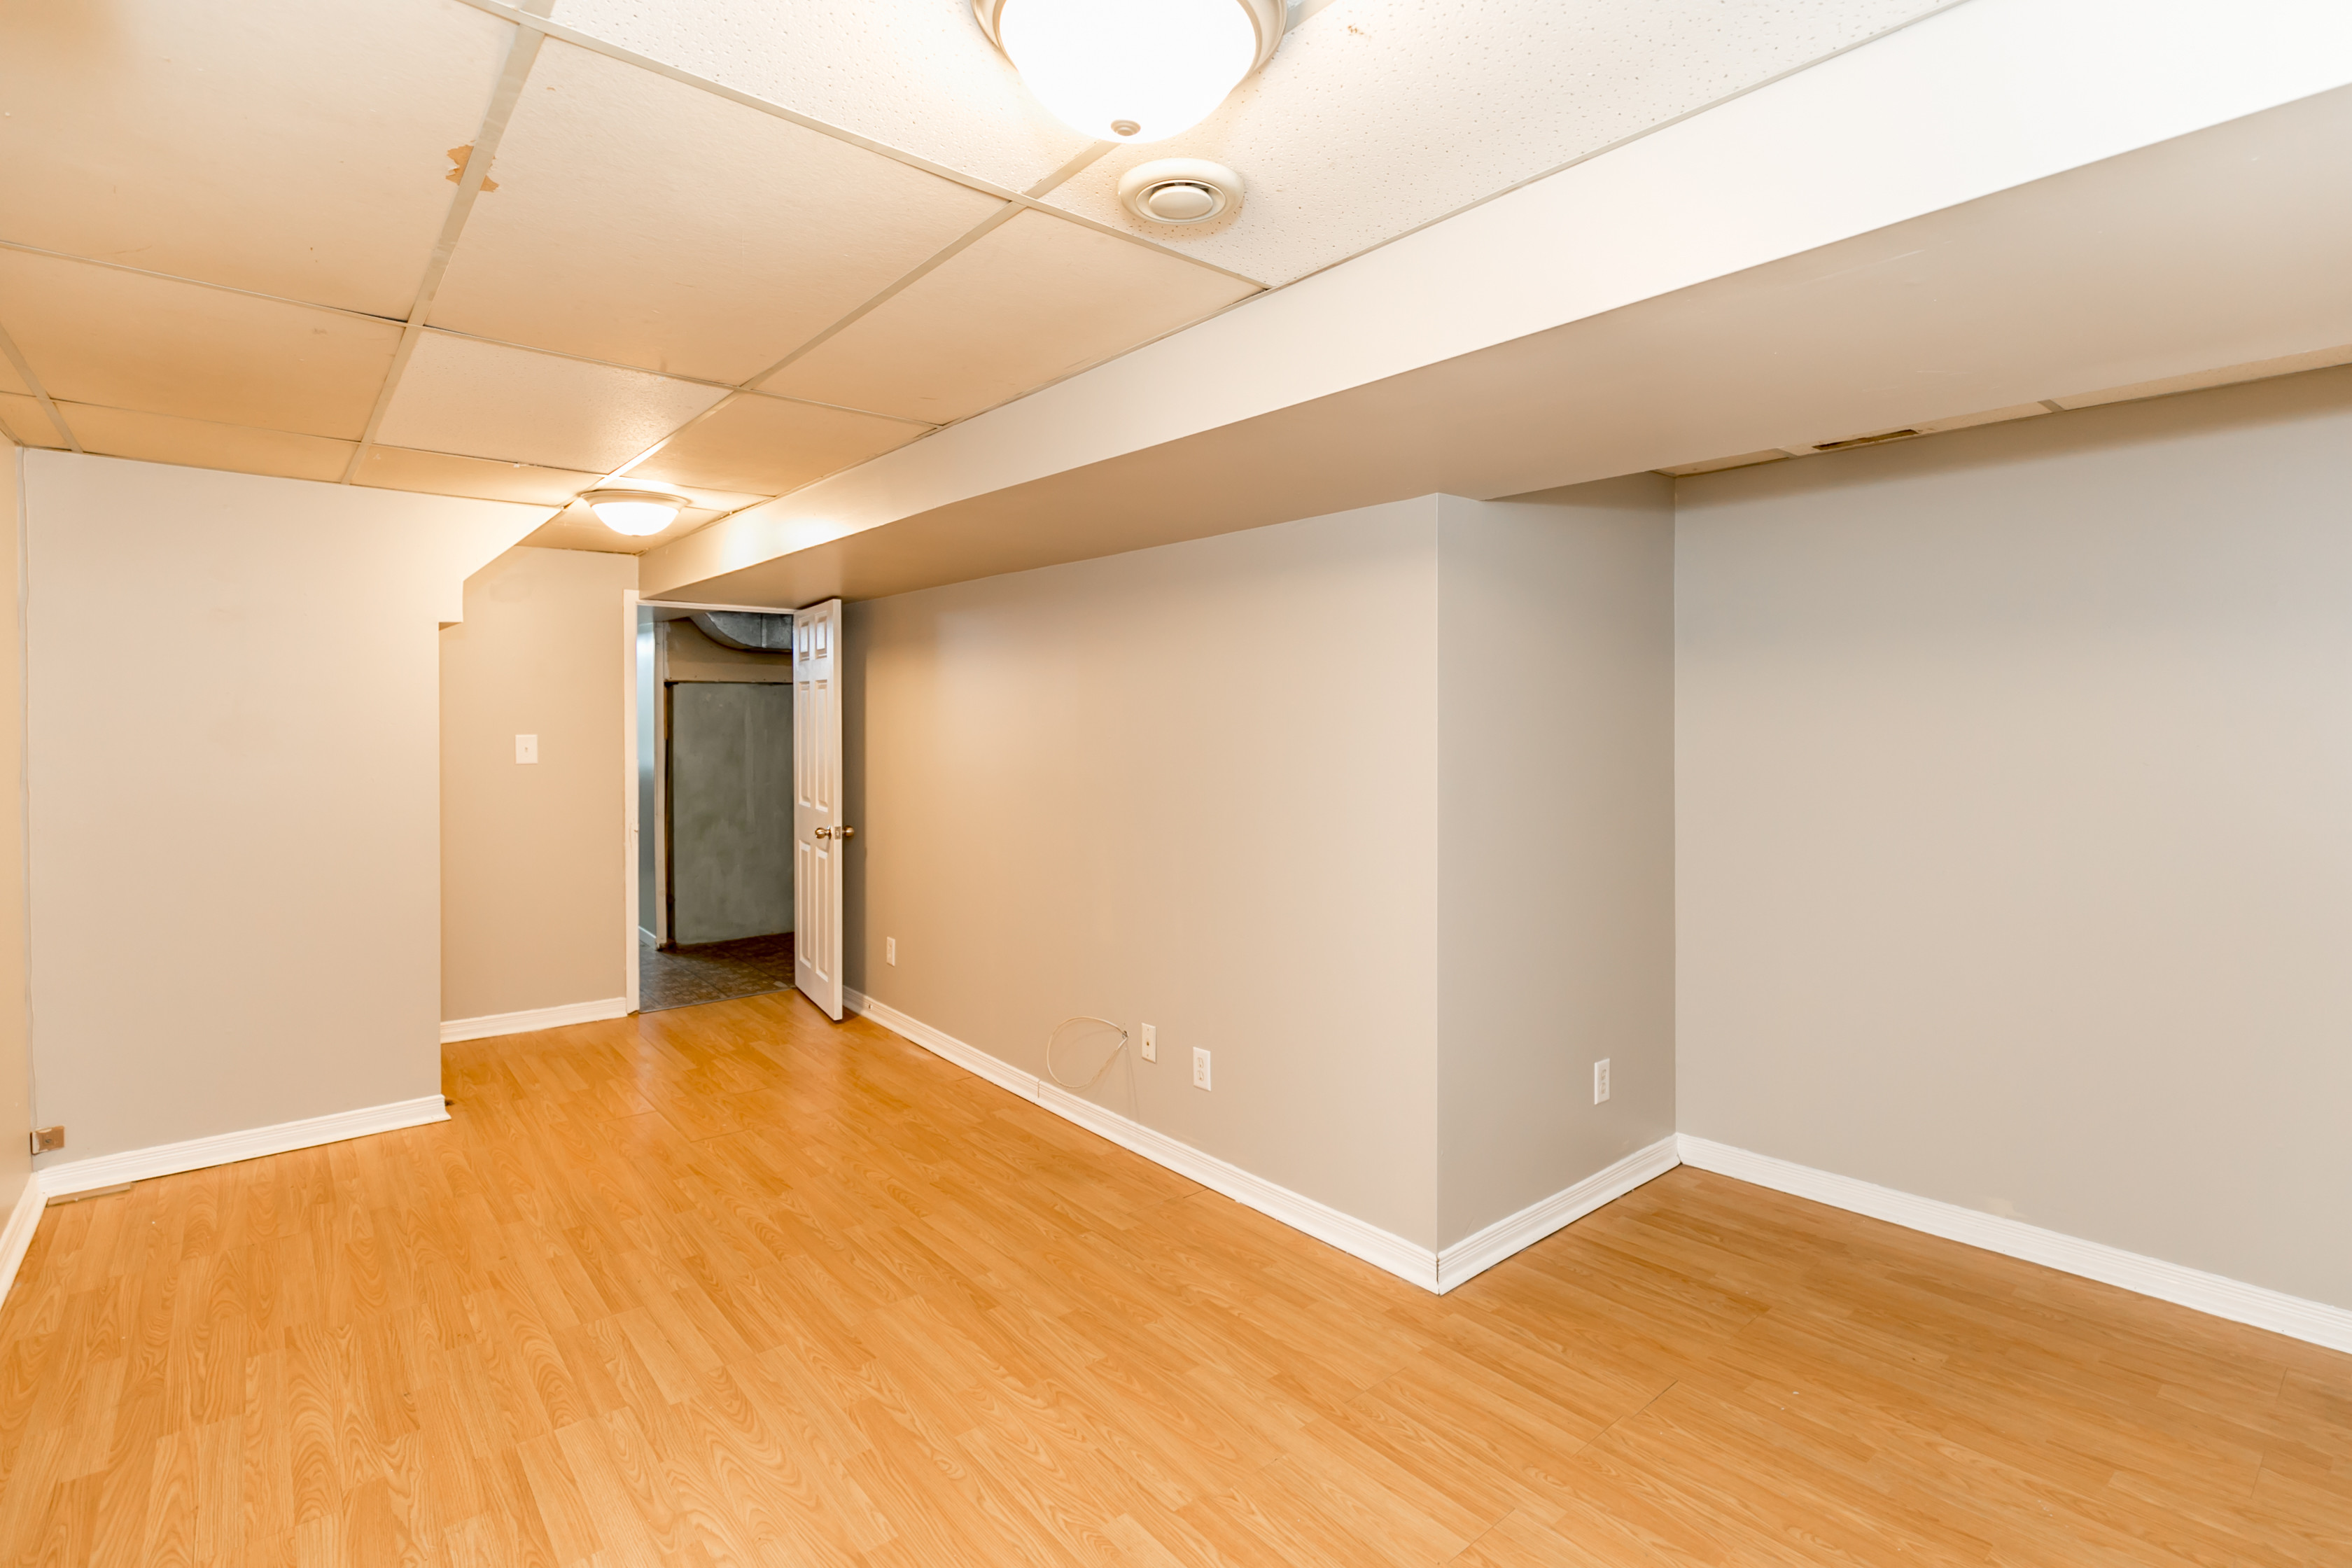 hardwood flooring barrie area of 42 2 bernick dr barrie for sale by the curtis goddard team the with 2 km